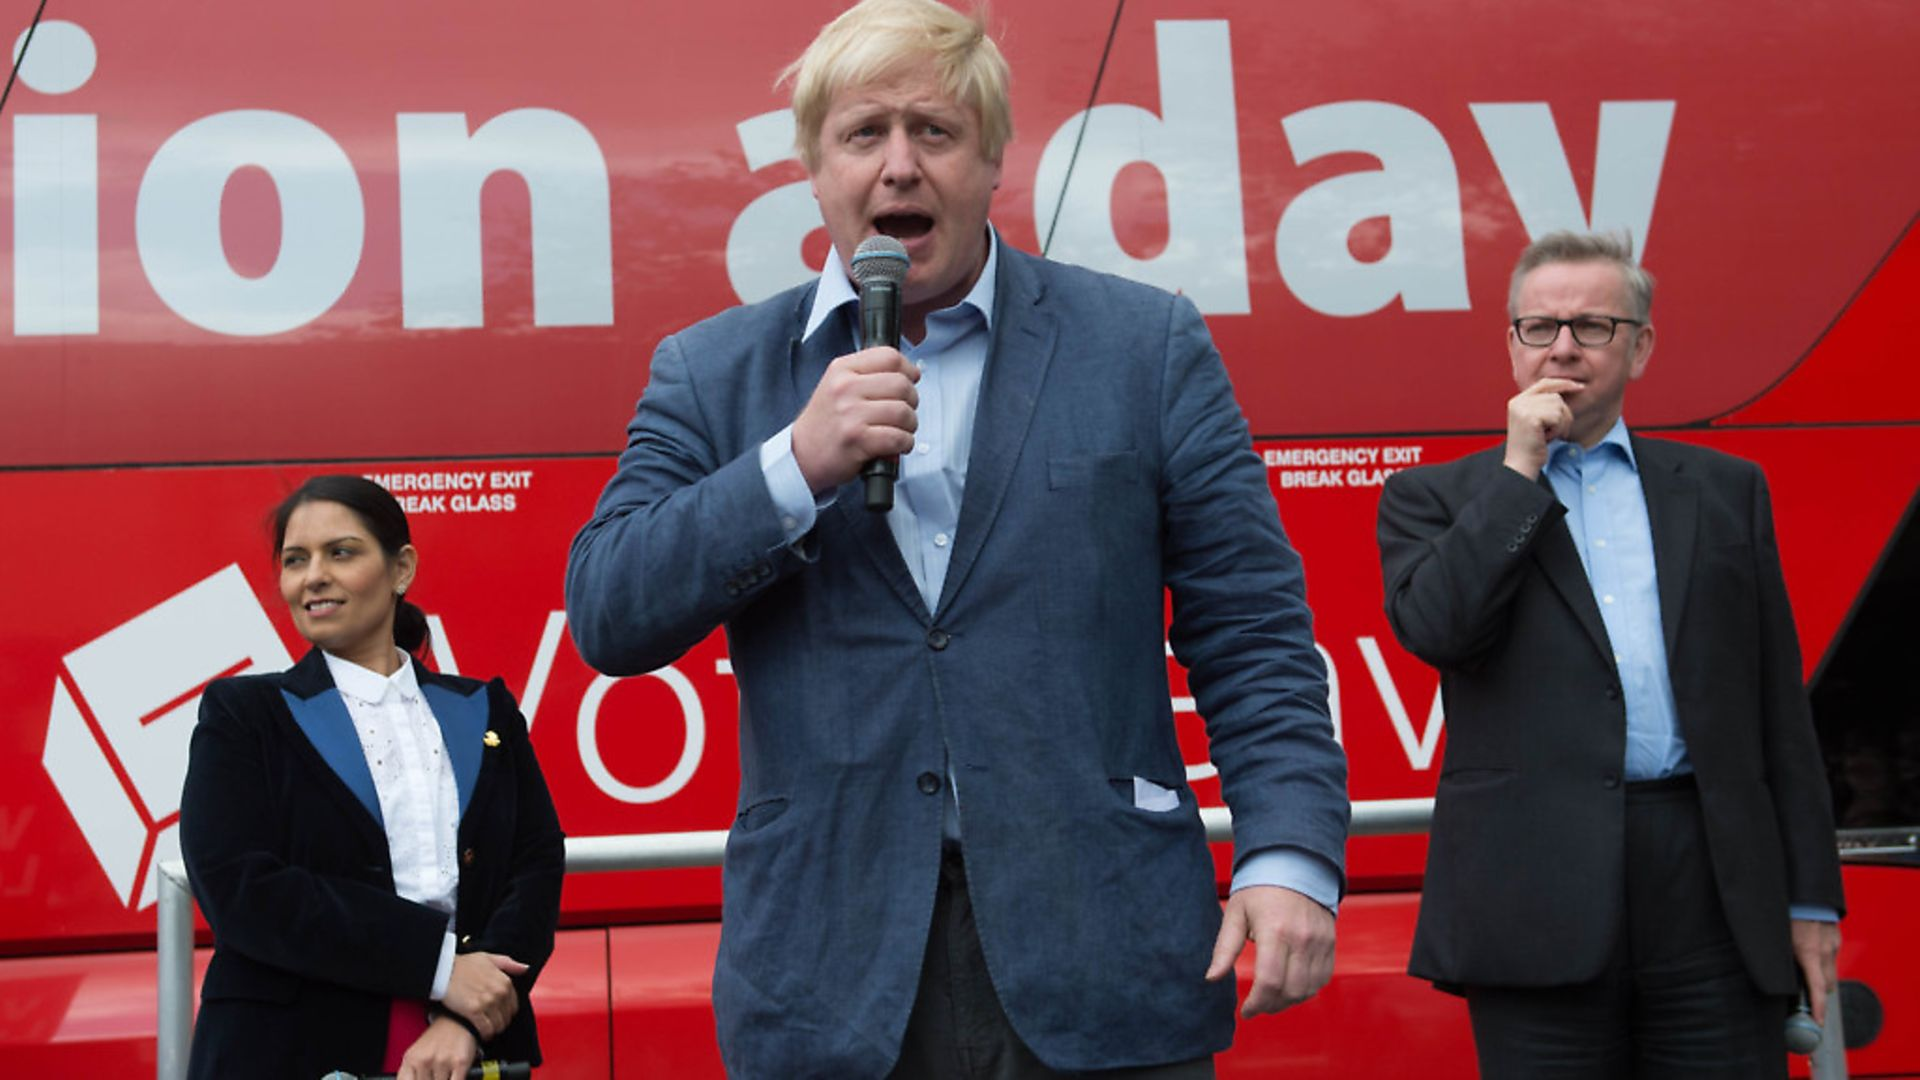 Boris Johnson speaks at a Vote Leave rally with Priti Patel and Michael Gove (right) in Preston town centre, Lancashire, as part of pro-Brexit campaigning. Photograph: Stefan Rousseau/PA. - Credit: PA